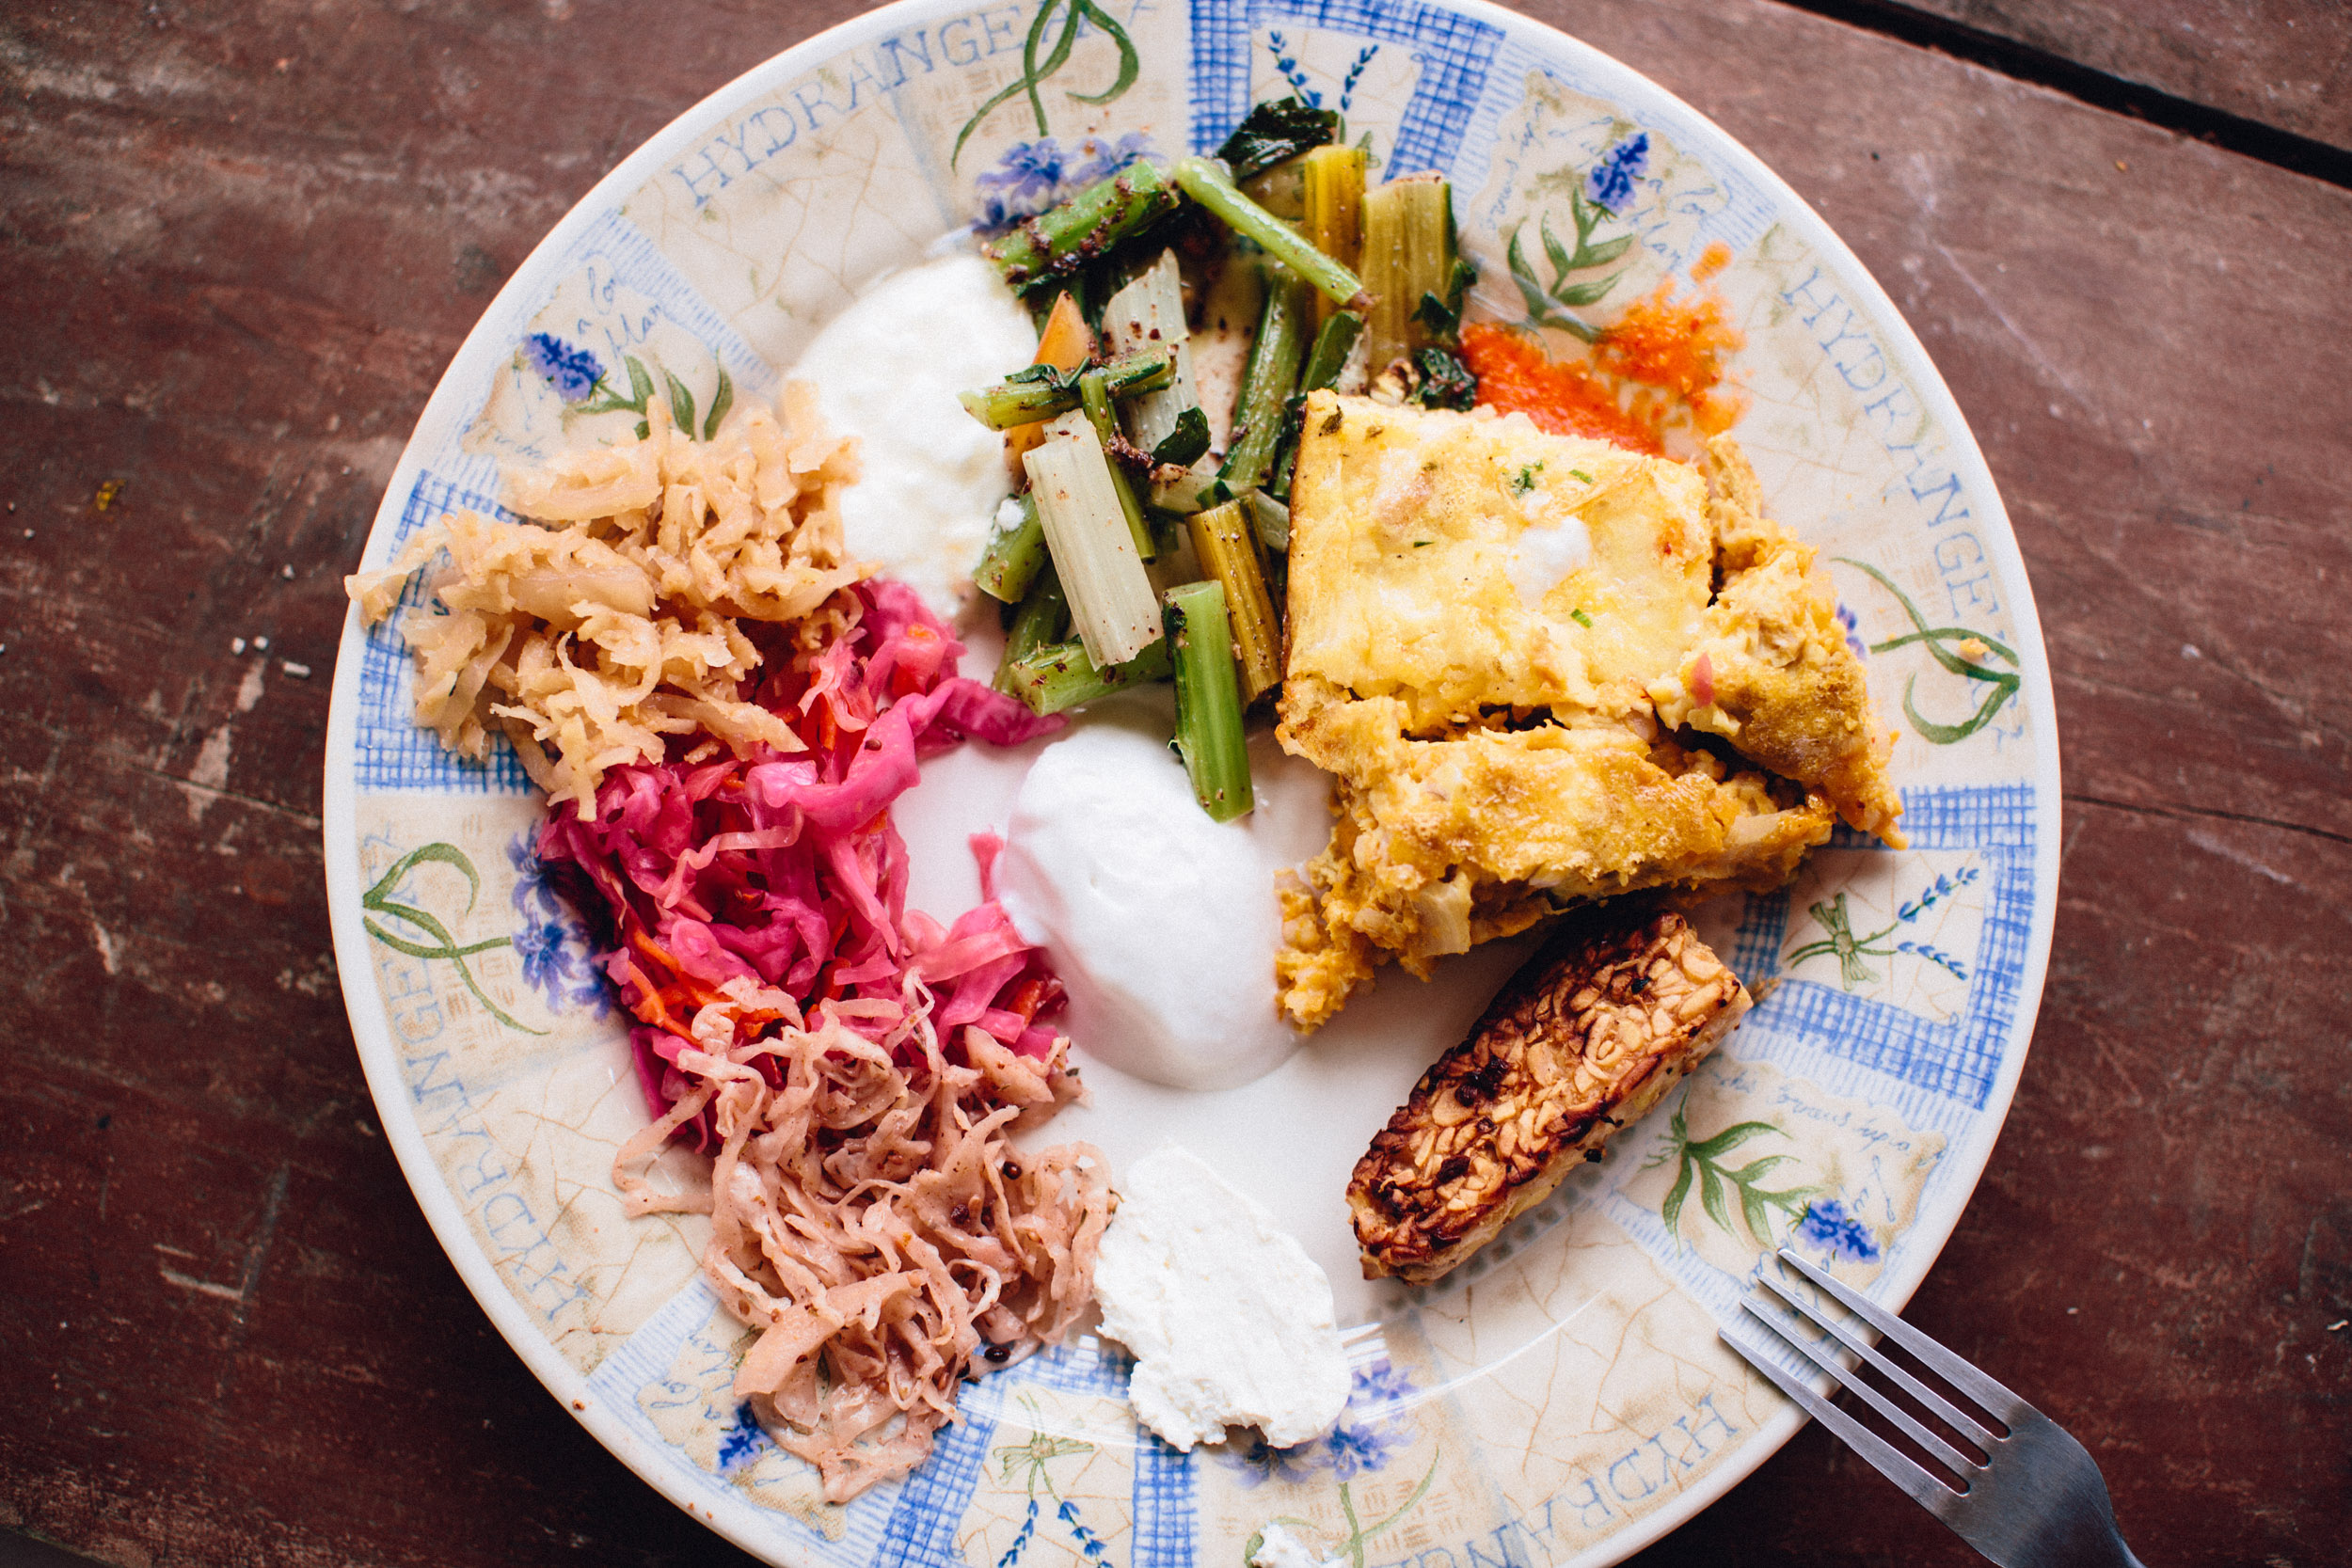 Please notice: 3 kinds of sauerkraut! And two kinds of cultured dairy. Plus tempeh. Just sayin.